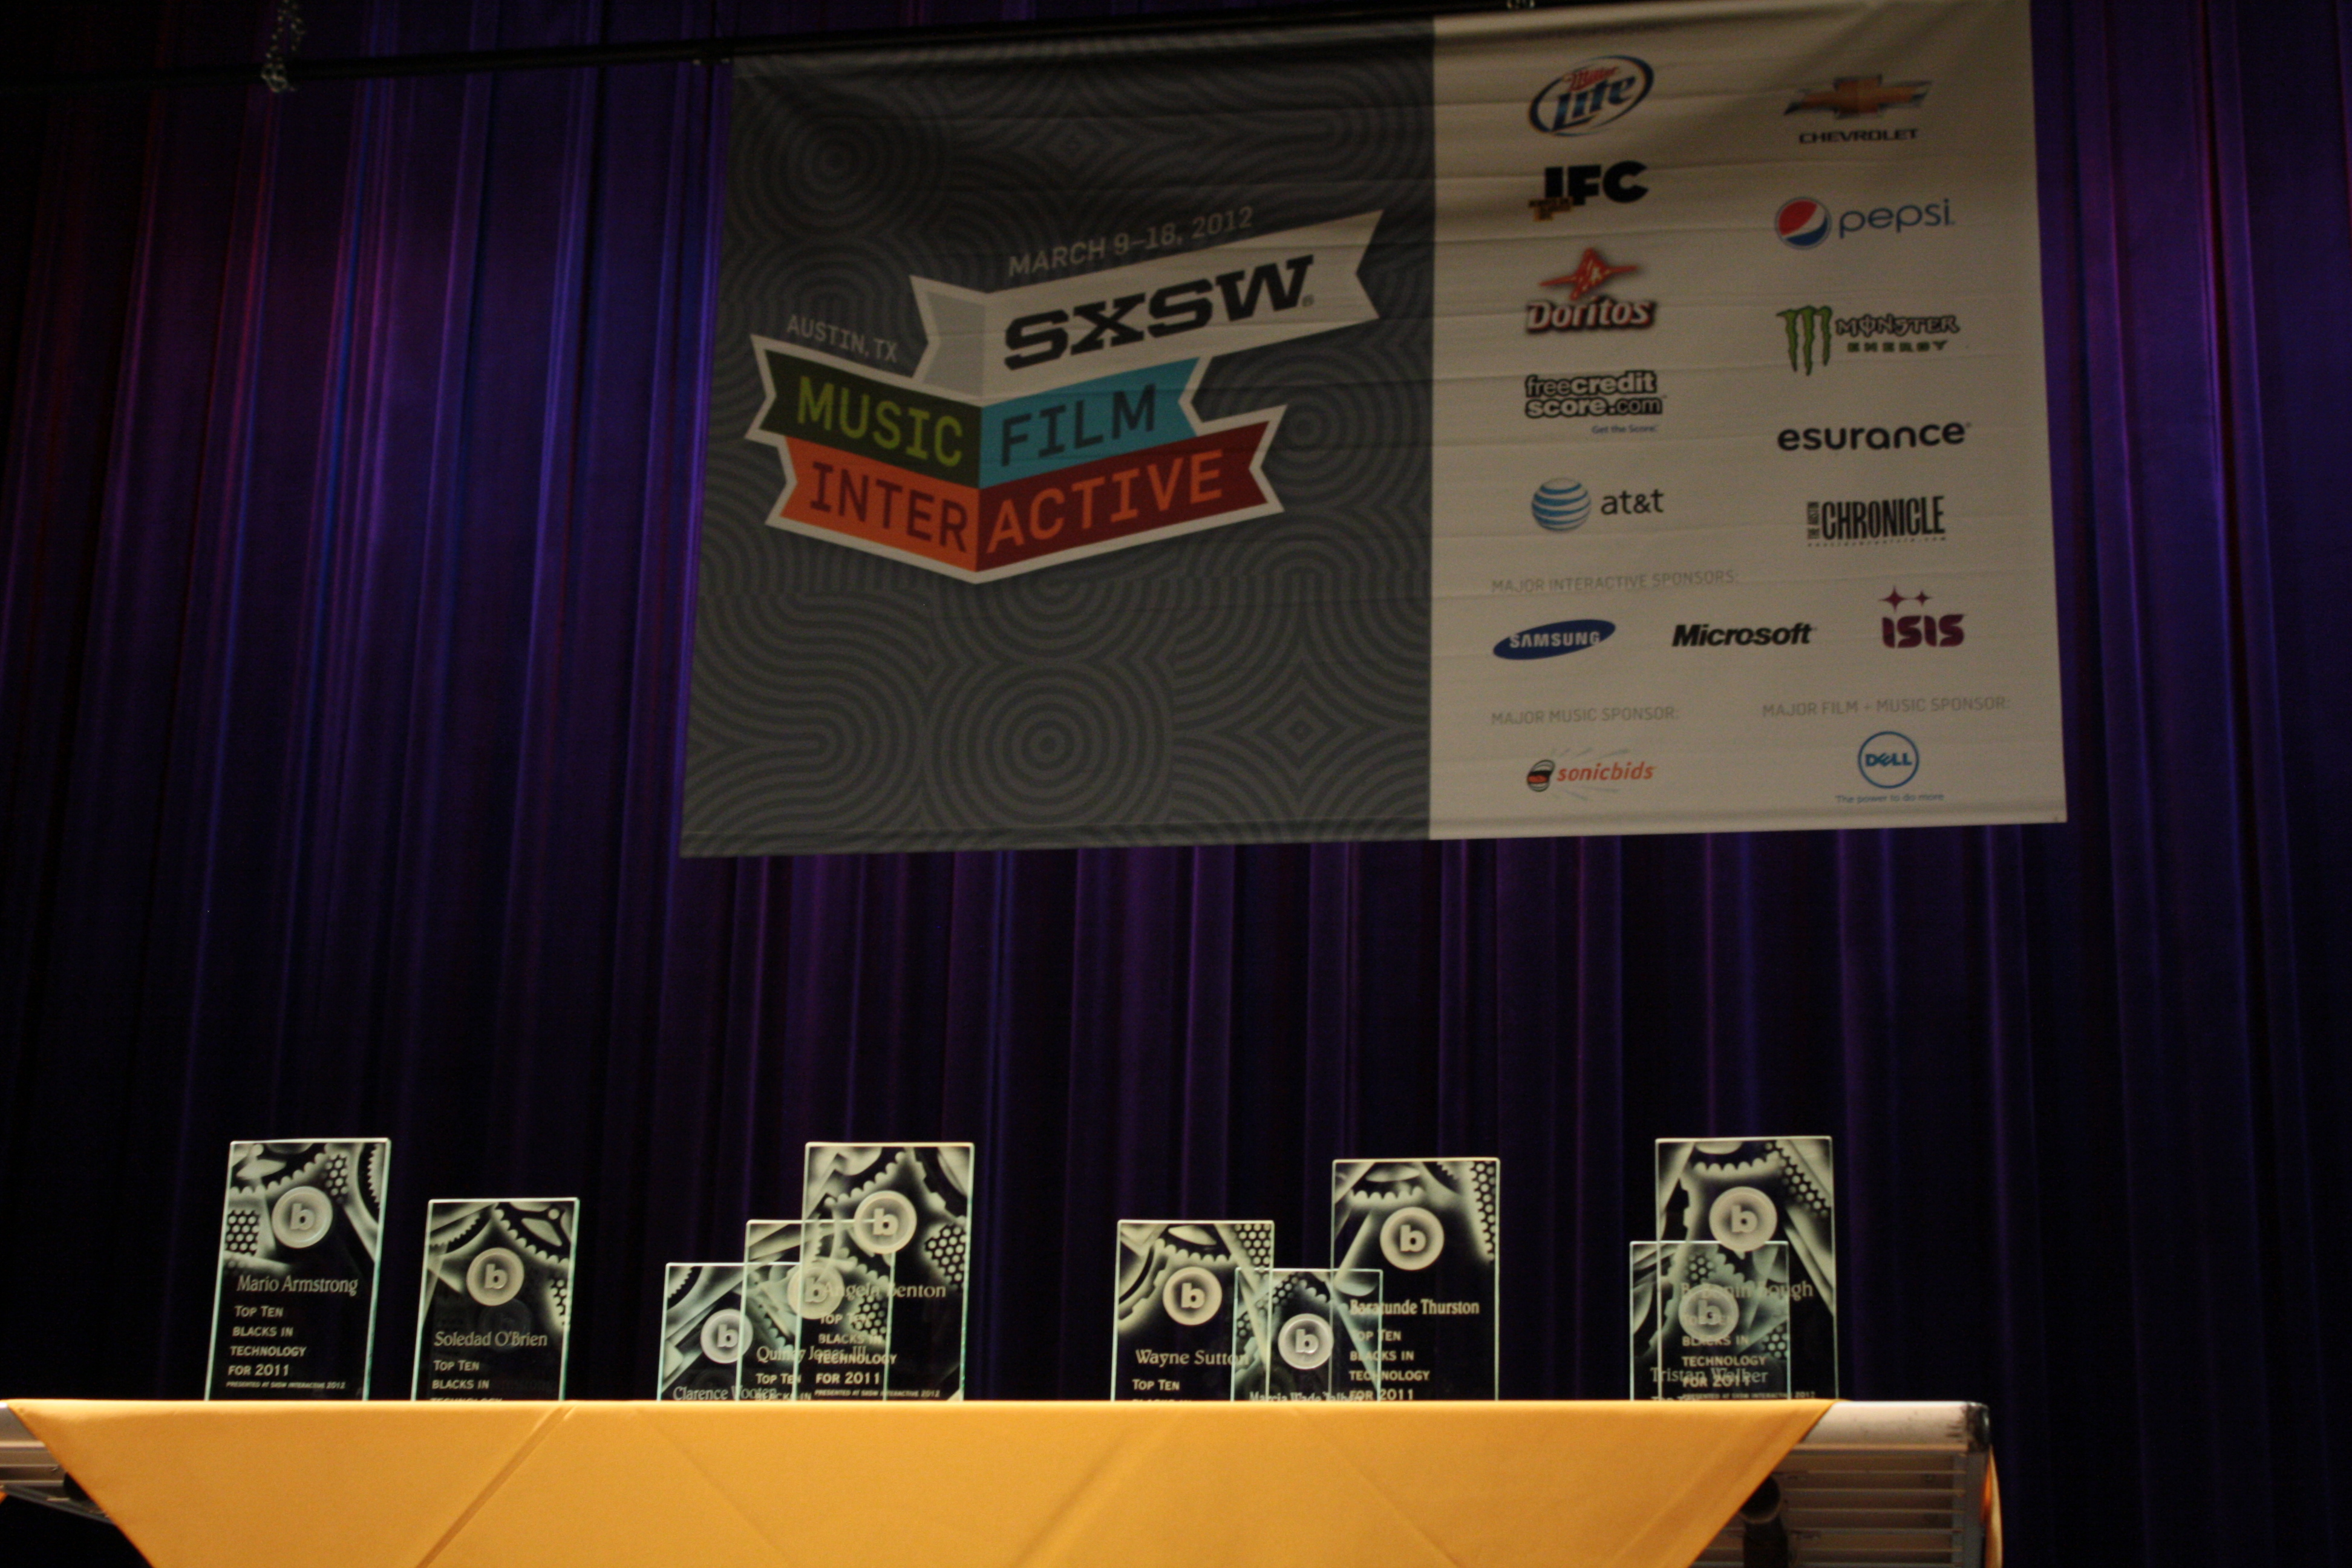 Blacks in Technology (BiT) celebrate people of color at the 2012 SXSW Interactive conference (Image: Winston Ford)